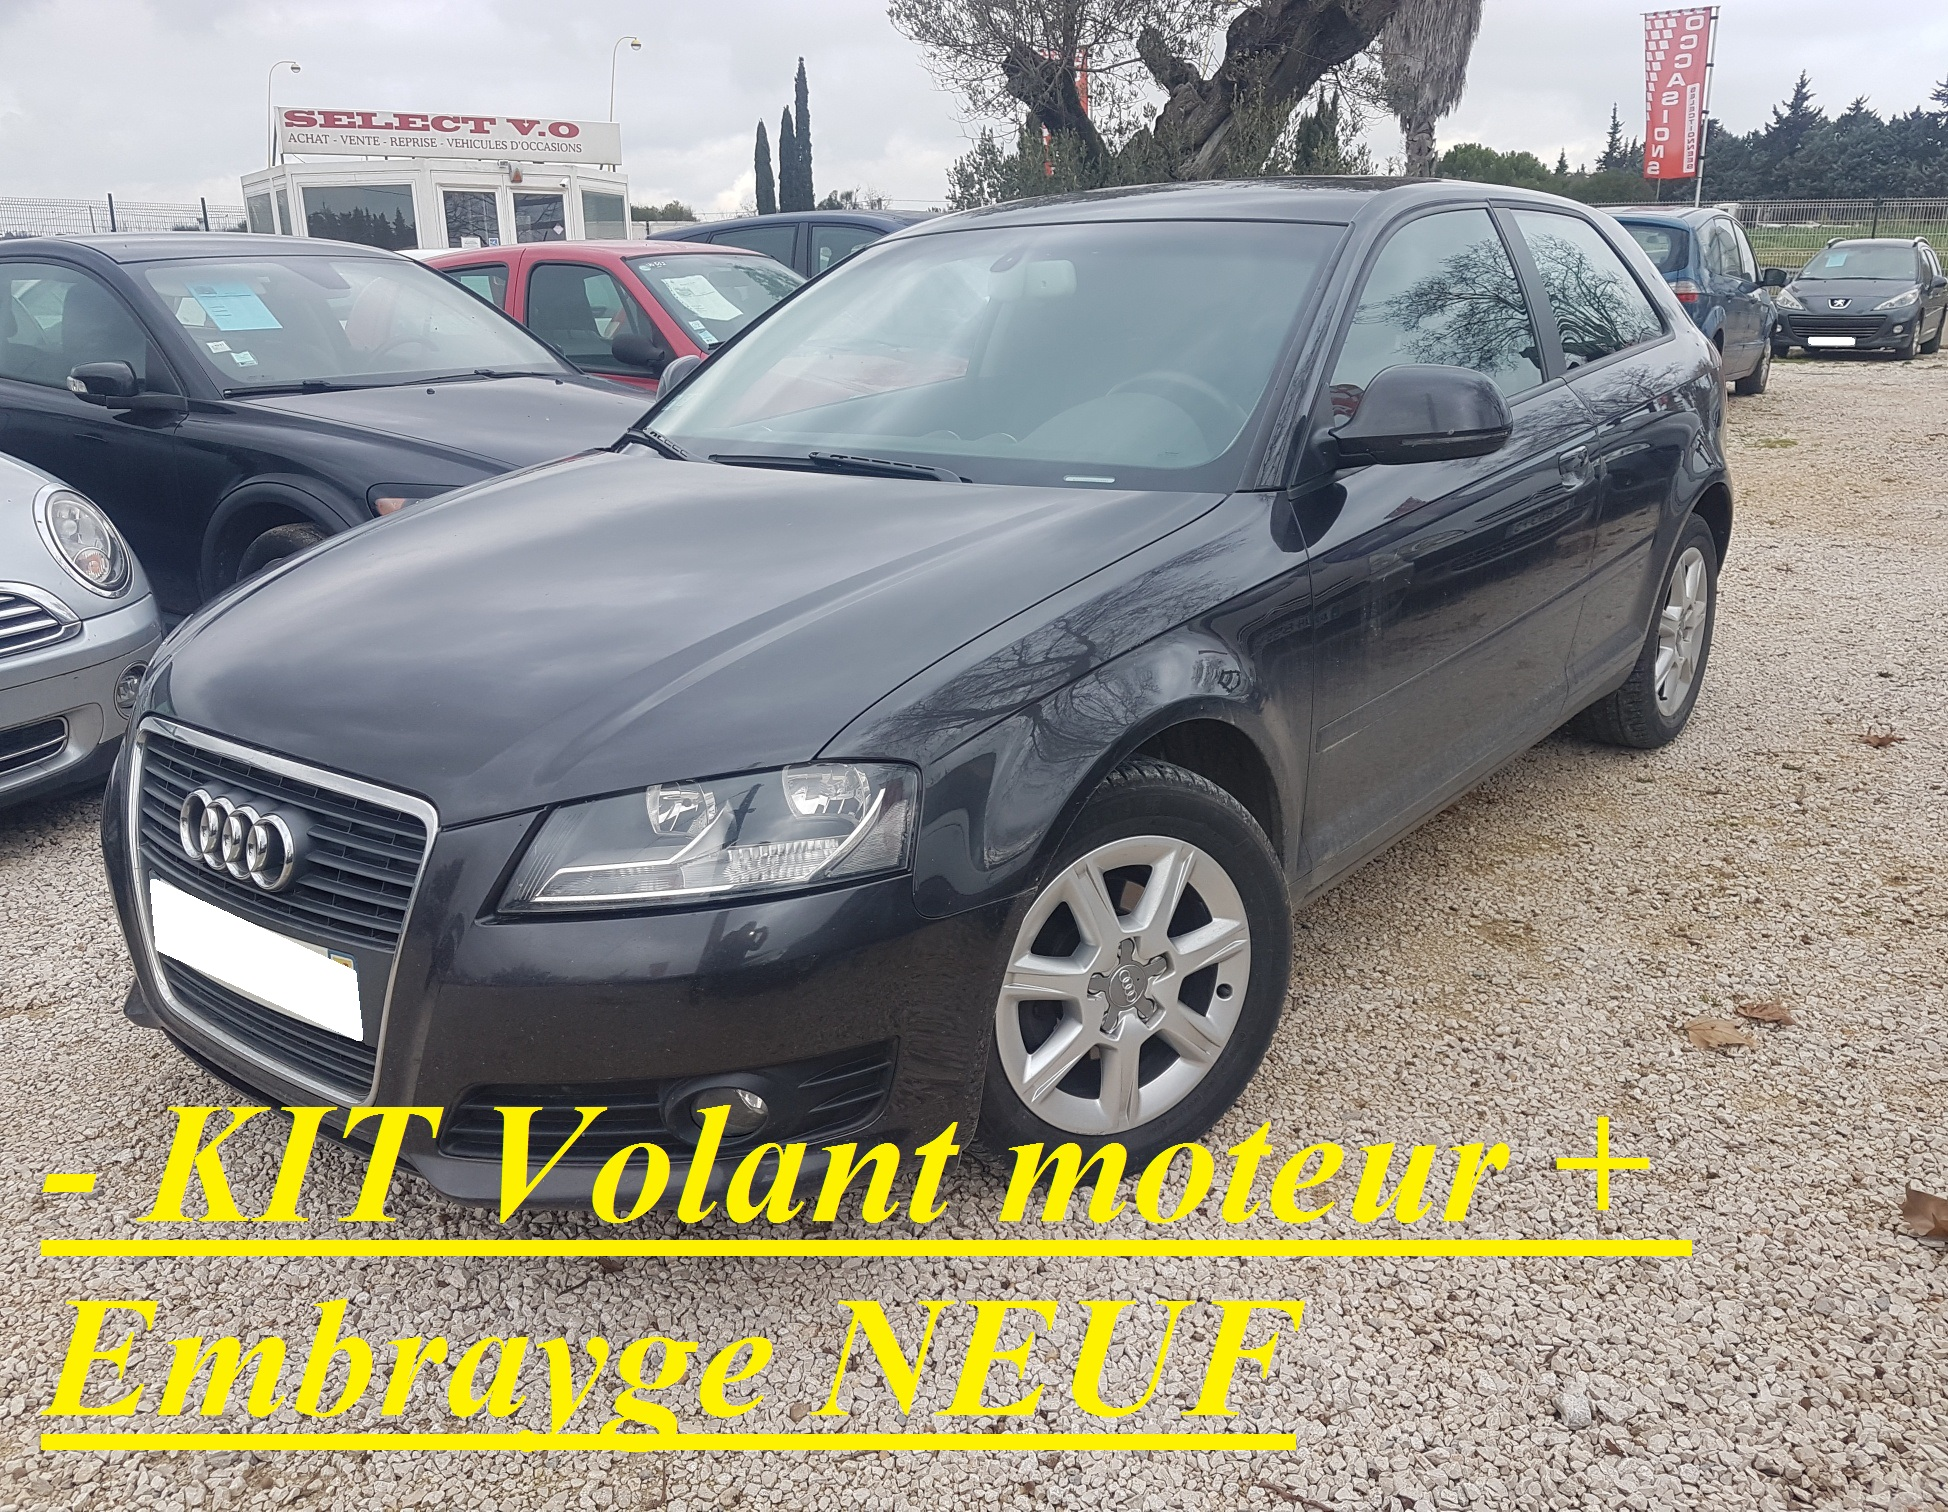 voiture audi a3 a3 1 6 tdi 105 dpf ambition luxe occasion diesel 2010 190615 km 7490. Black Bedroom Furniture Sets. Home Design Ideas